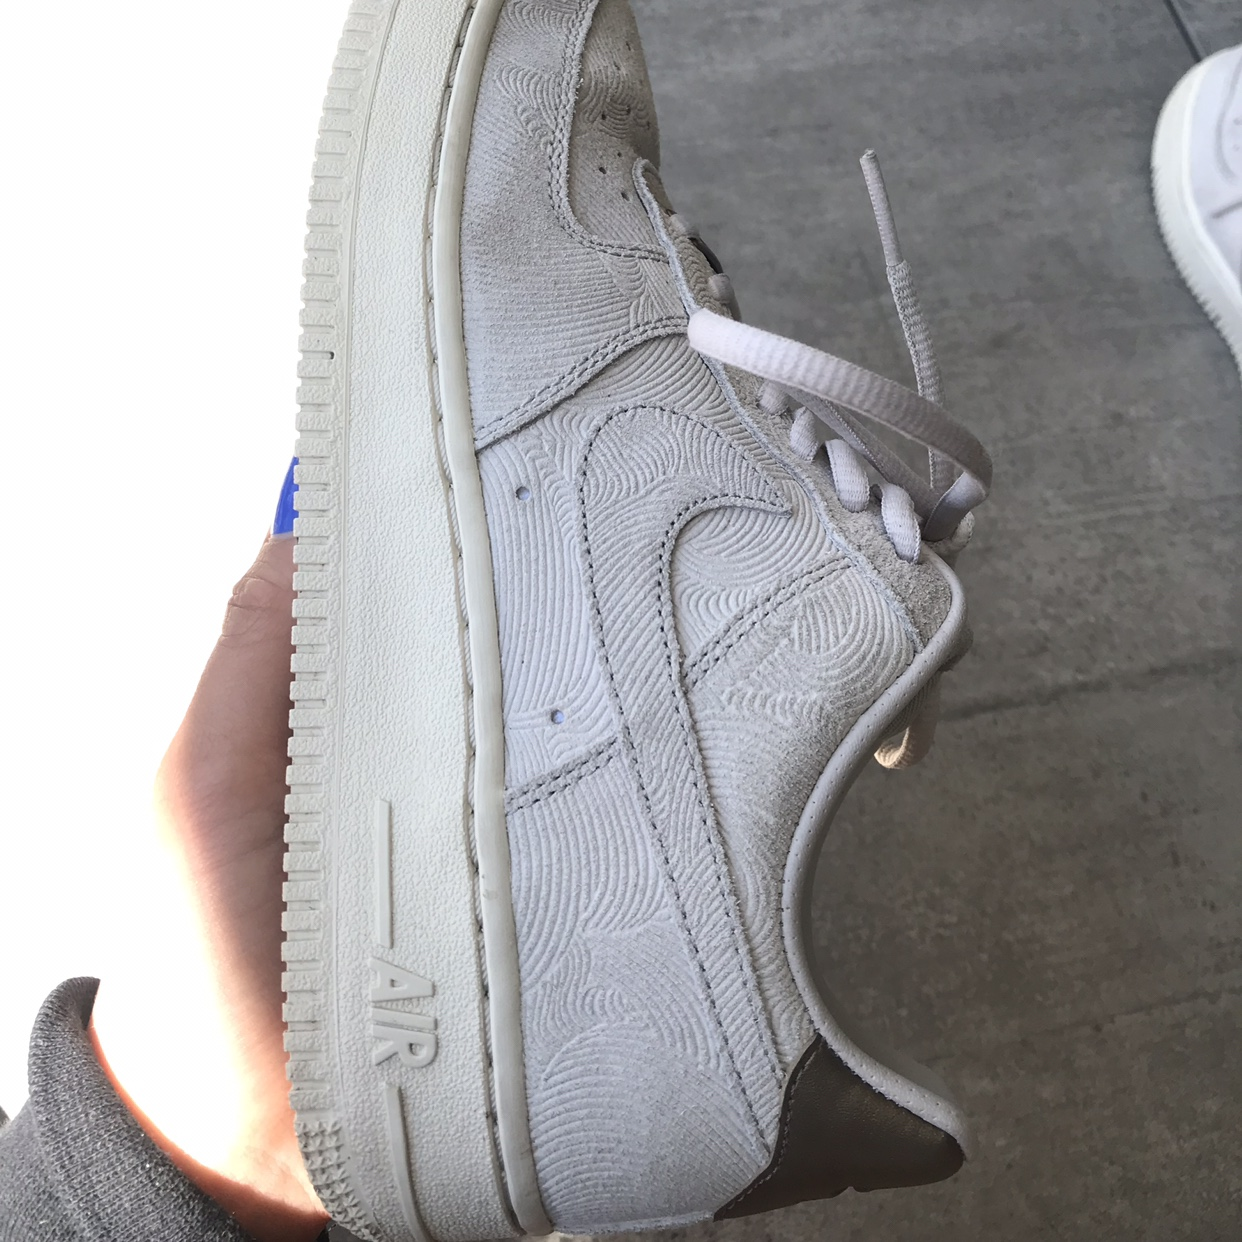 Nike Air Force 1 Low size 37,5 EU UK 4 Condition: Depop